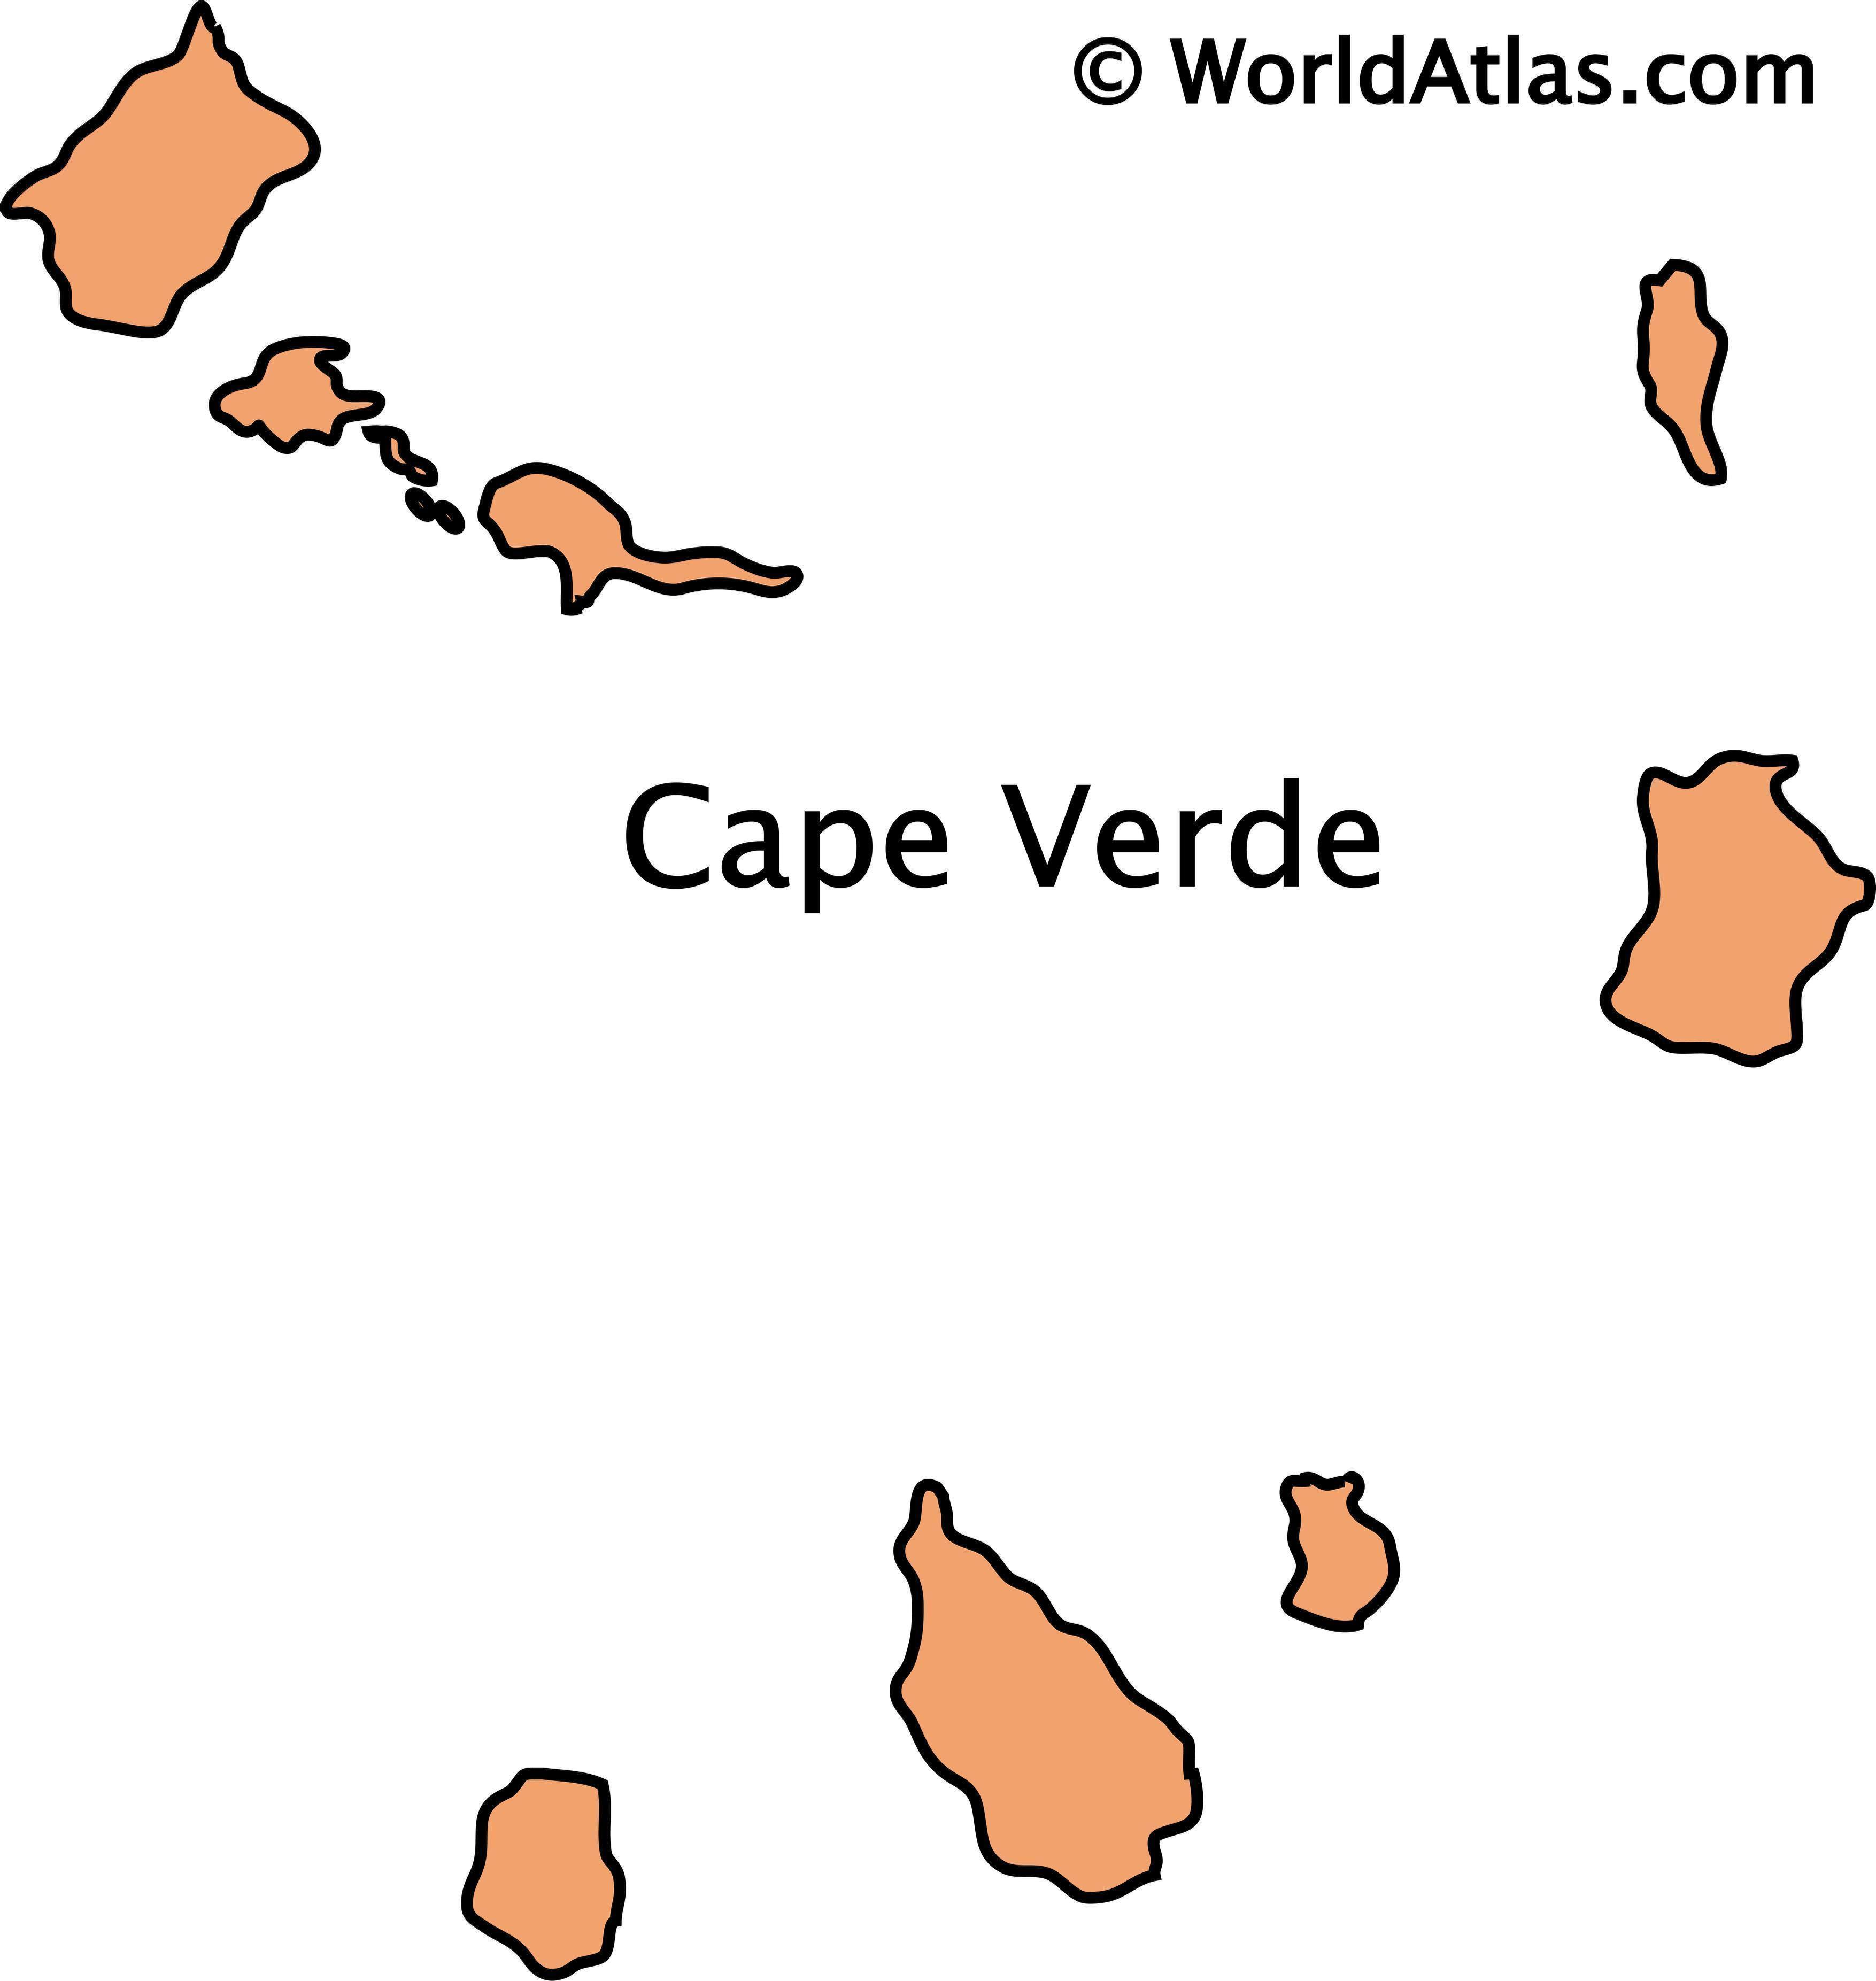 Outline map of Cape Verde